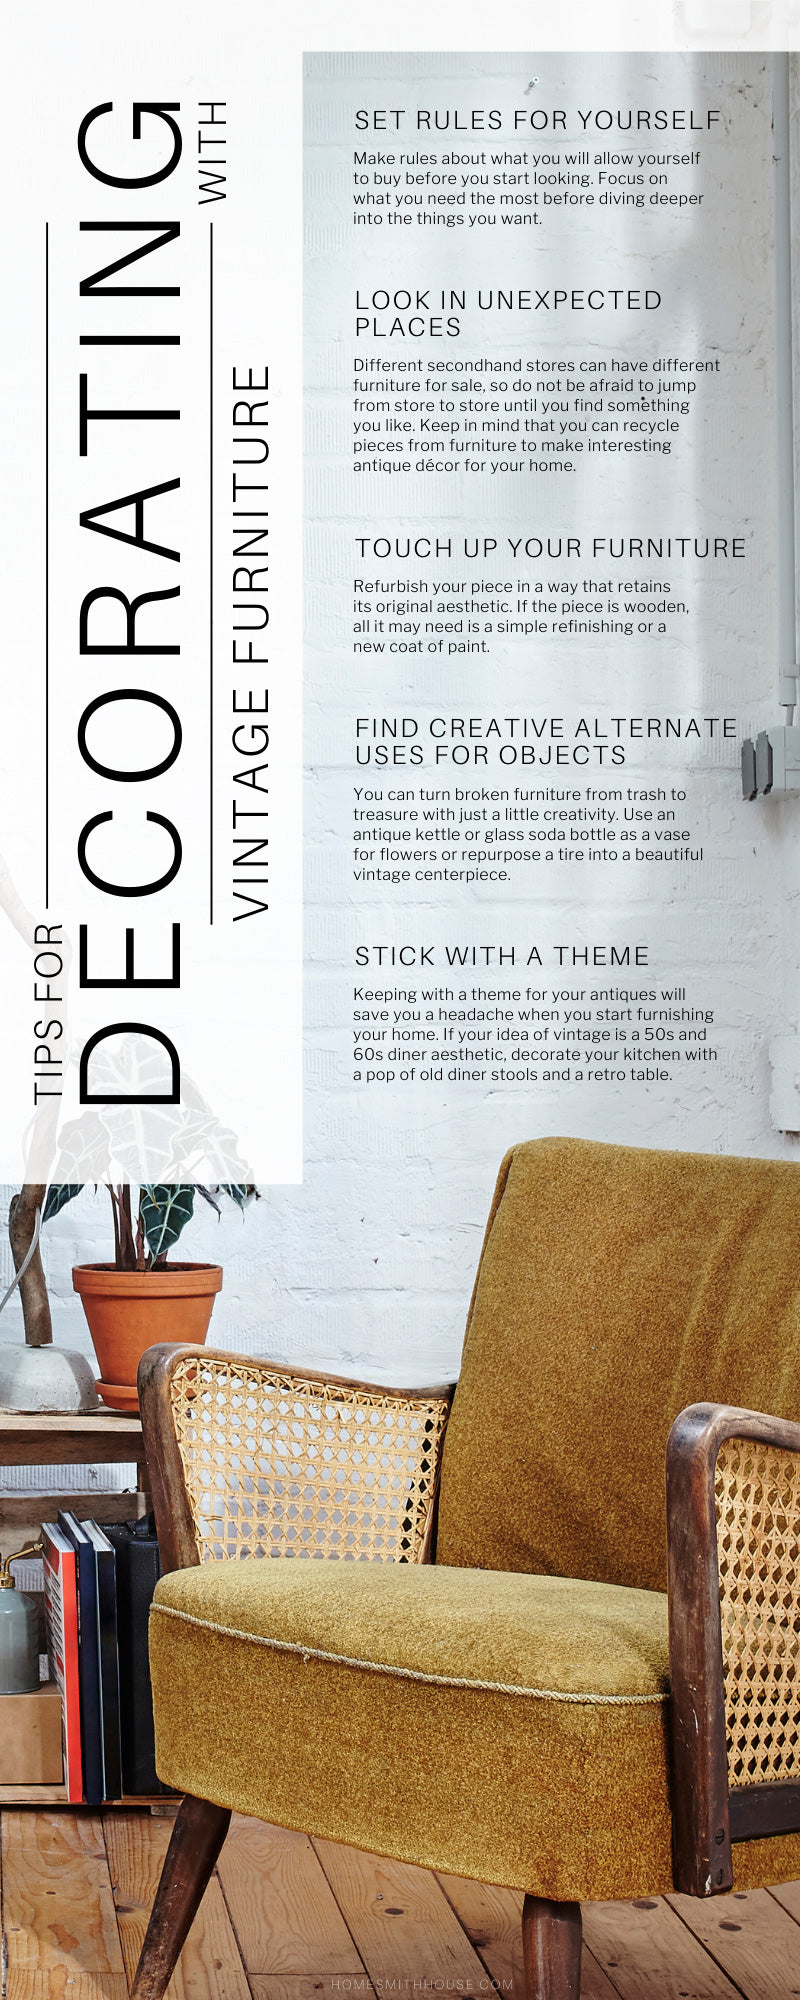 Tips for Decorating With Vintage Furniture